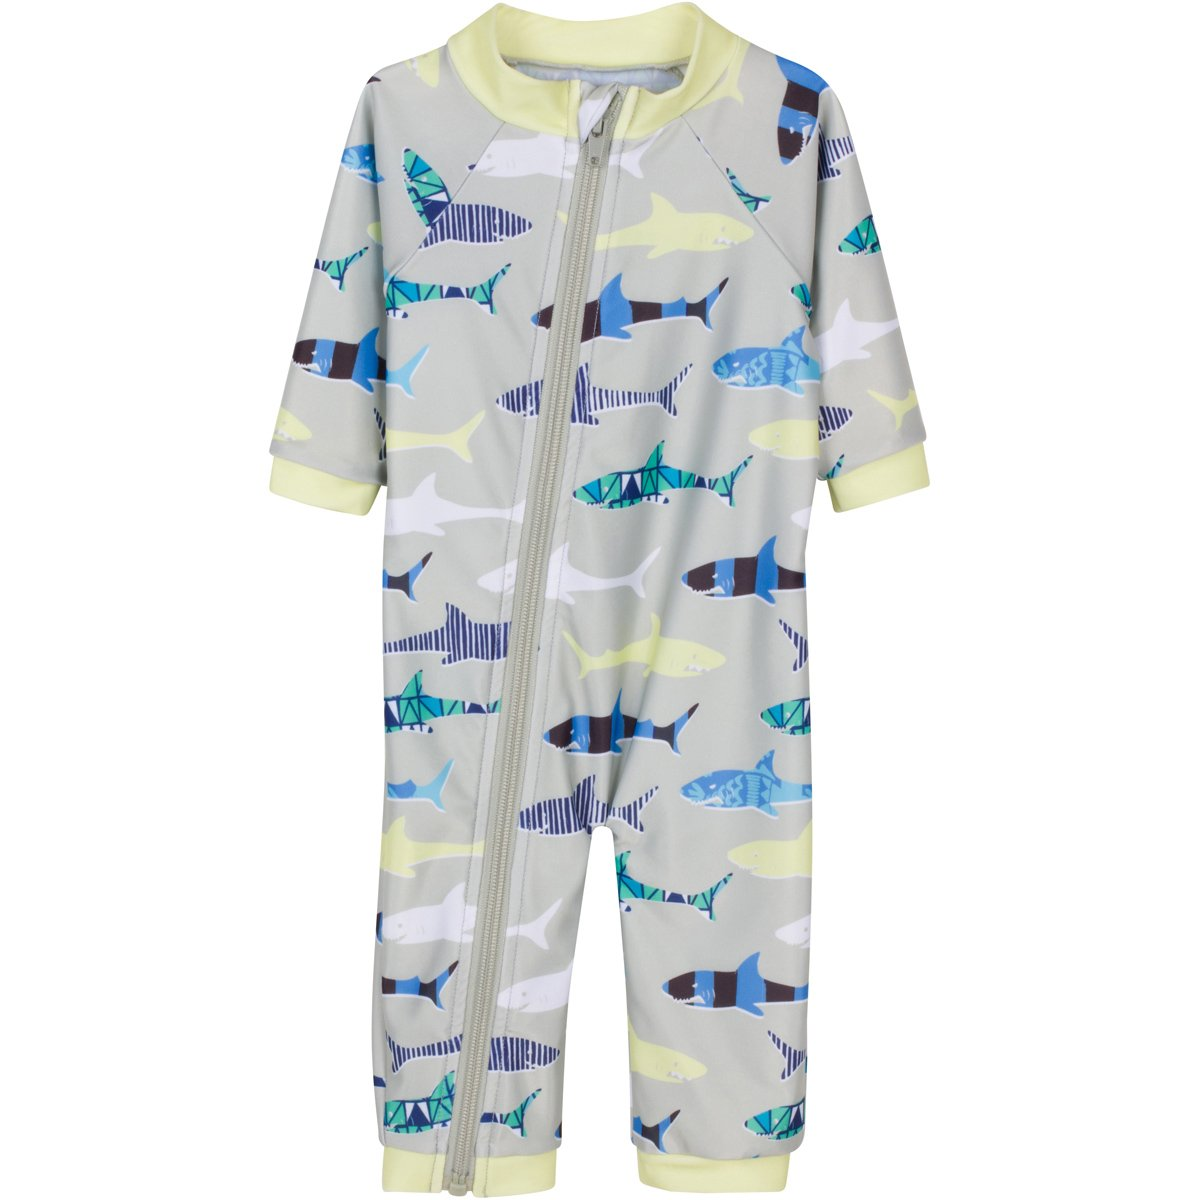 d105546e55 Galleon - SwimZip¨ Little Boy Long Sleeve Sunsuit With UPF 50 Sun  Protection Gray 6-12 Month